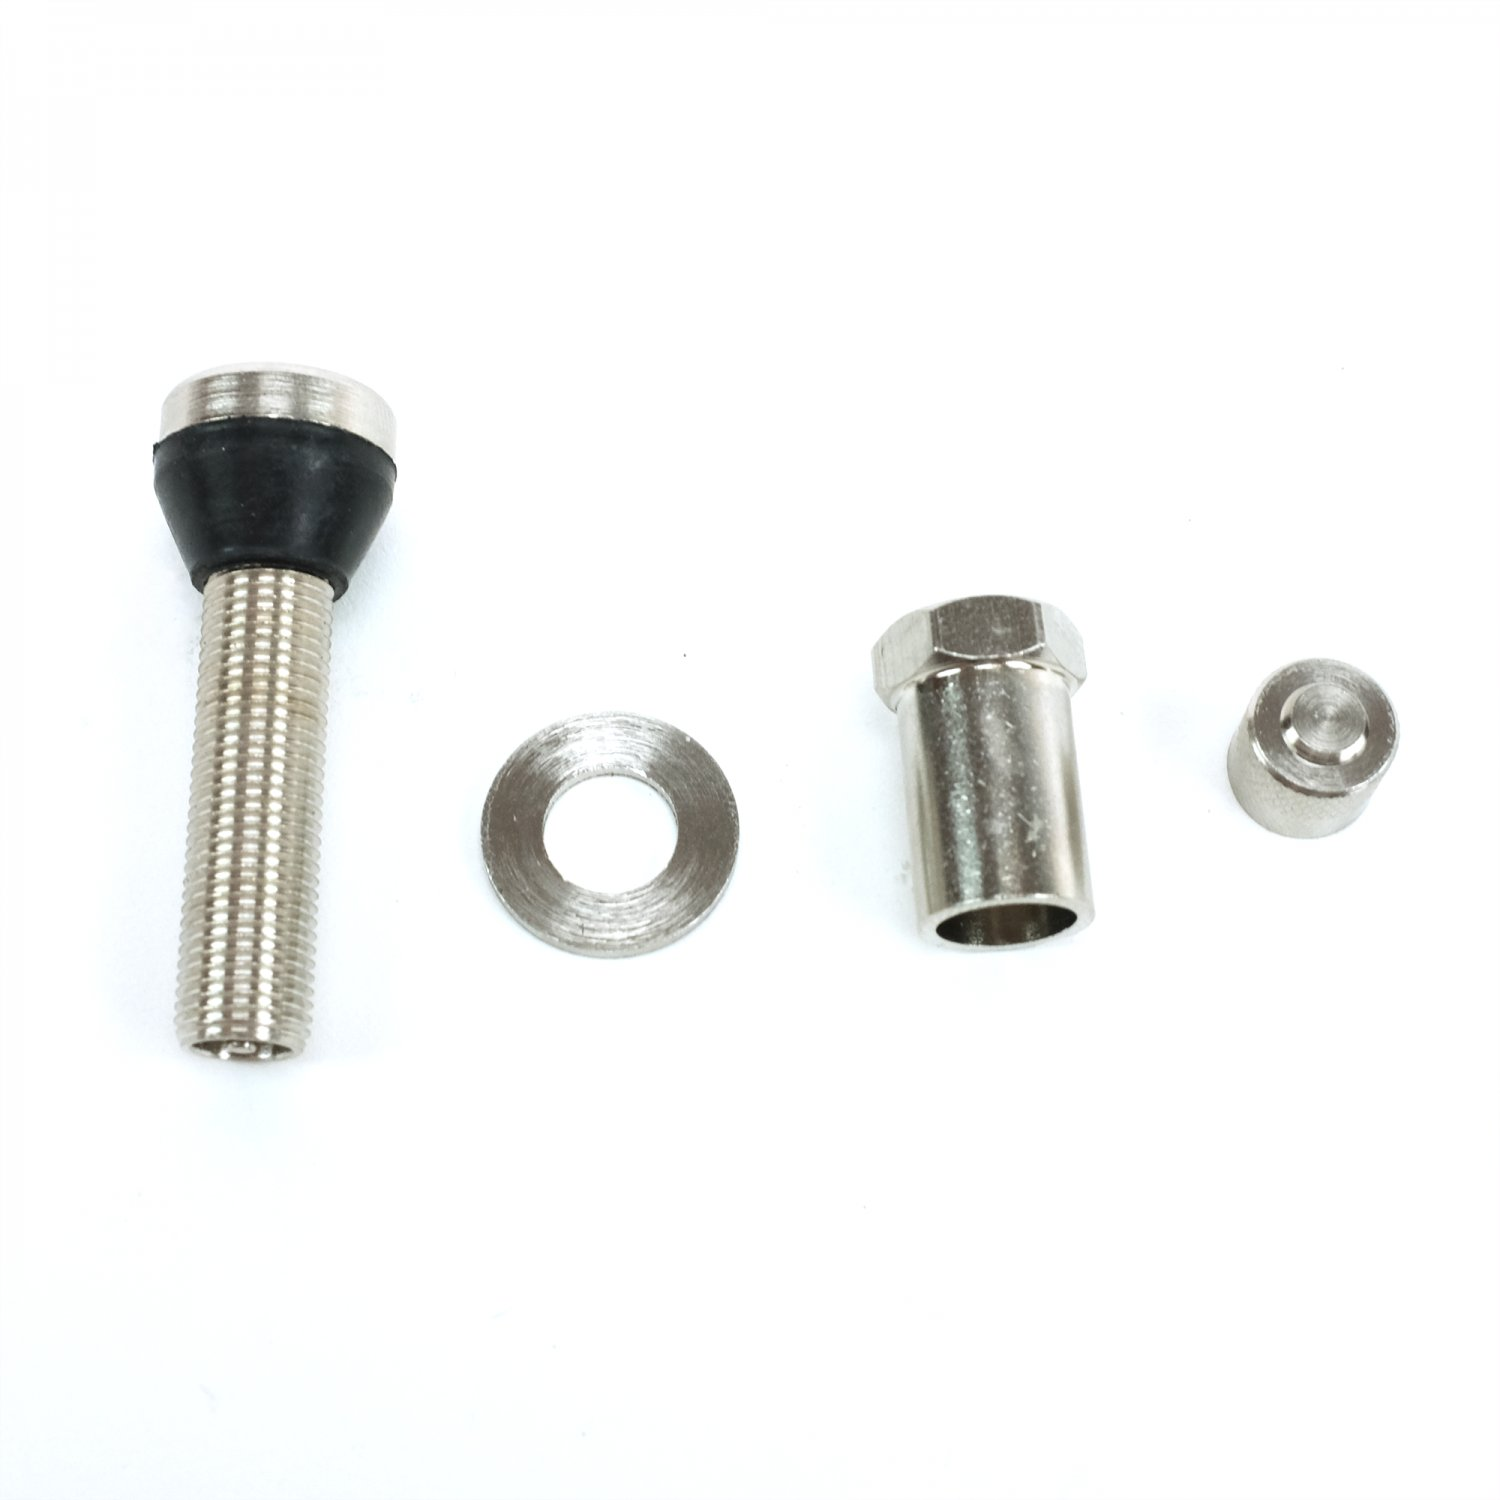 Time to replace those stock valve stems and caps. Jazz up your tires with  this 4 pack of metal bolt-in valve stems and classic metal caps.